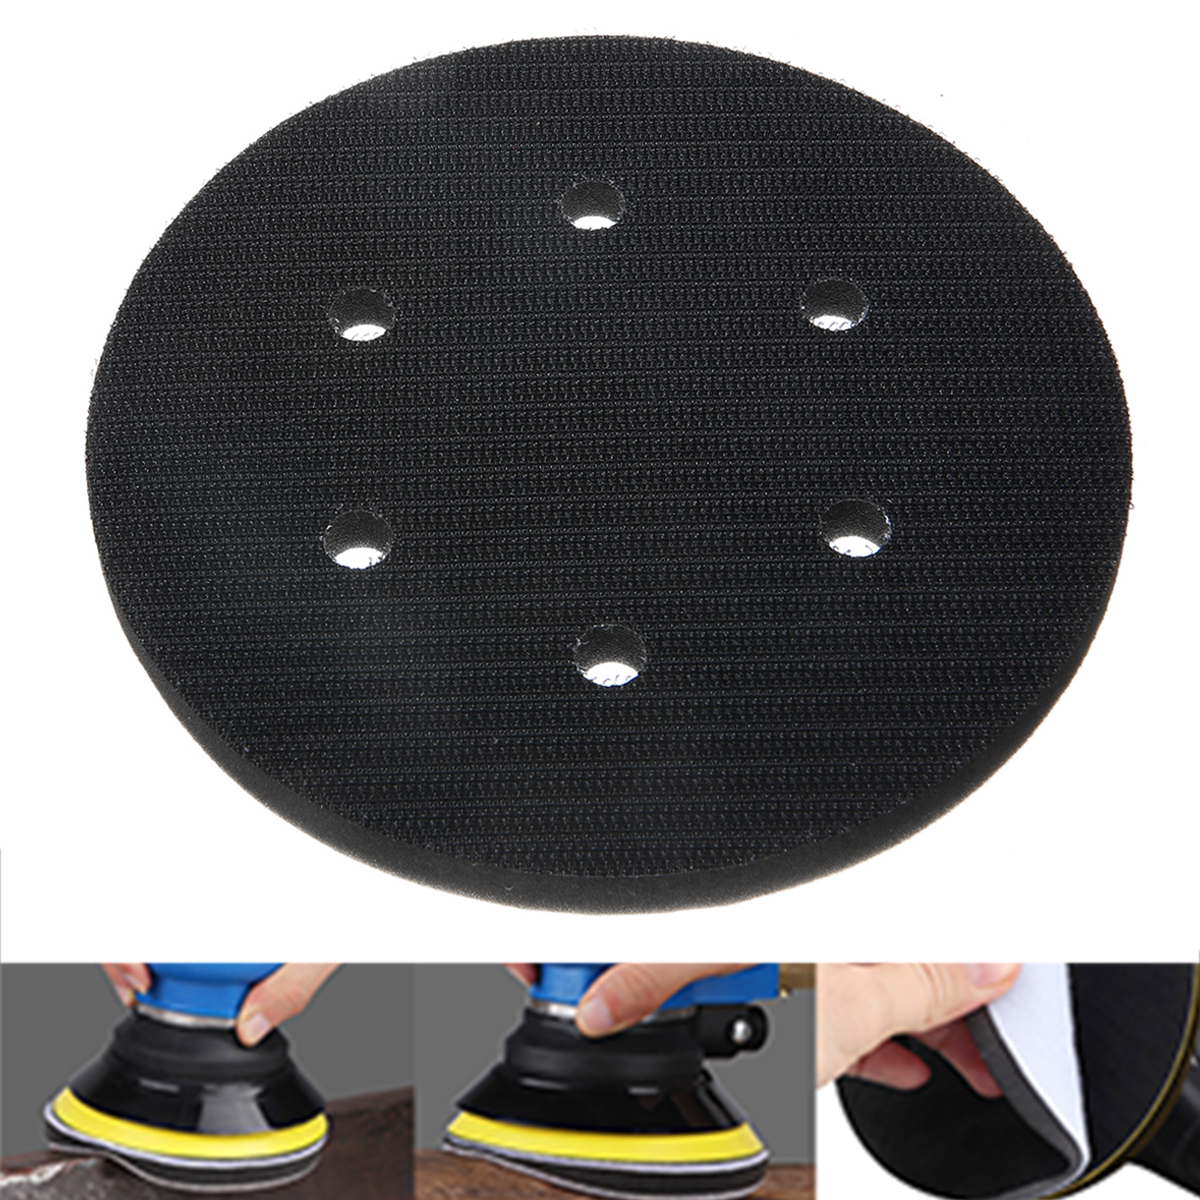 1pc 6 Inch Interface Cushion Pad 150mm 6 Hole Backing Pad Hook And Loop Foam Protecting Sanding Disc Power Sander Accessories